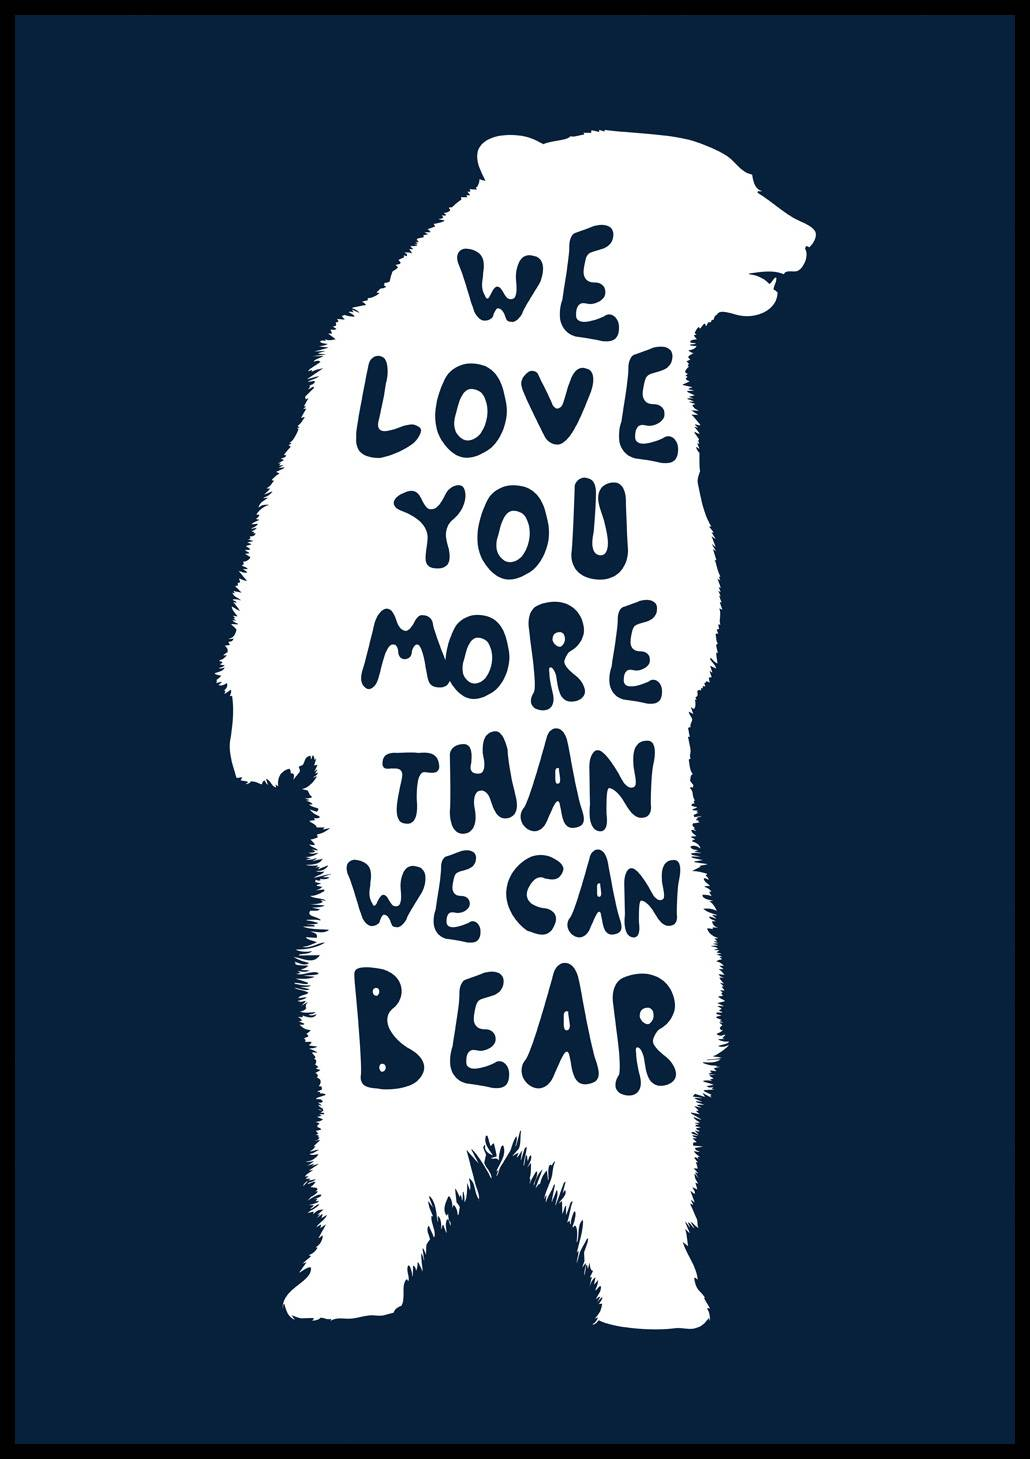 Bildverkstad We love you more than we can bear - 21x29,7 cm (A4)